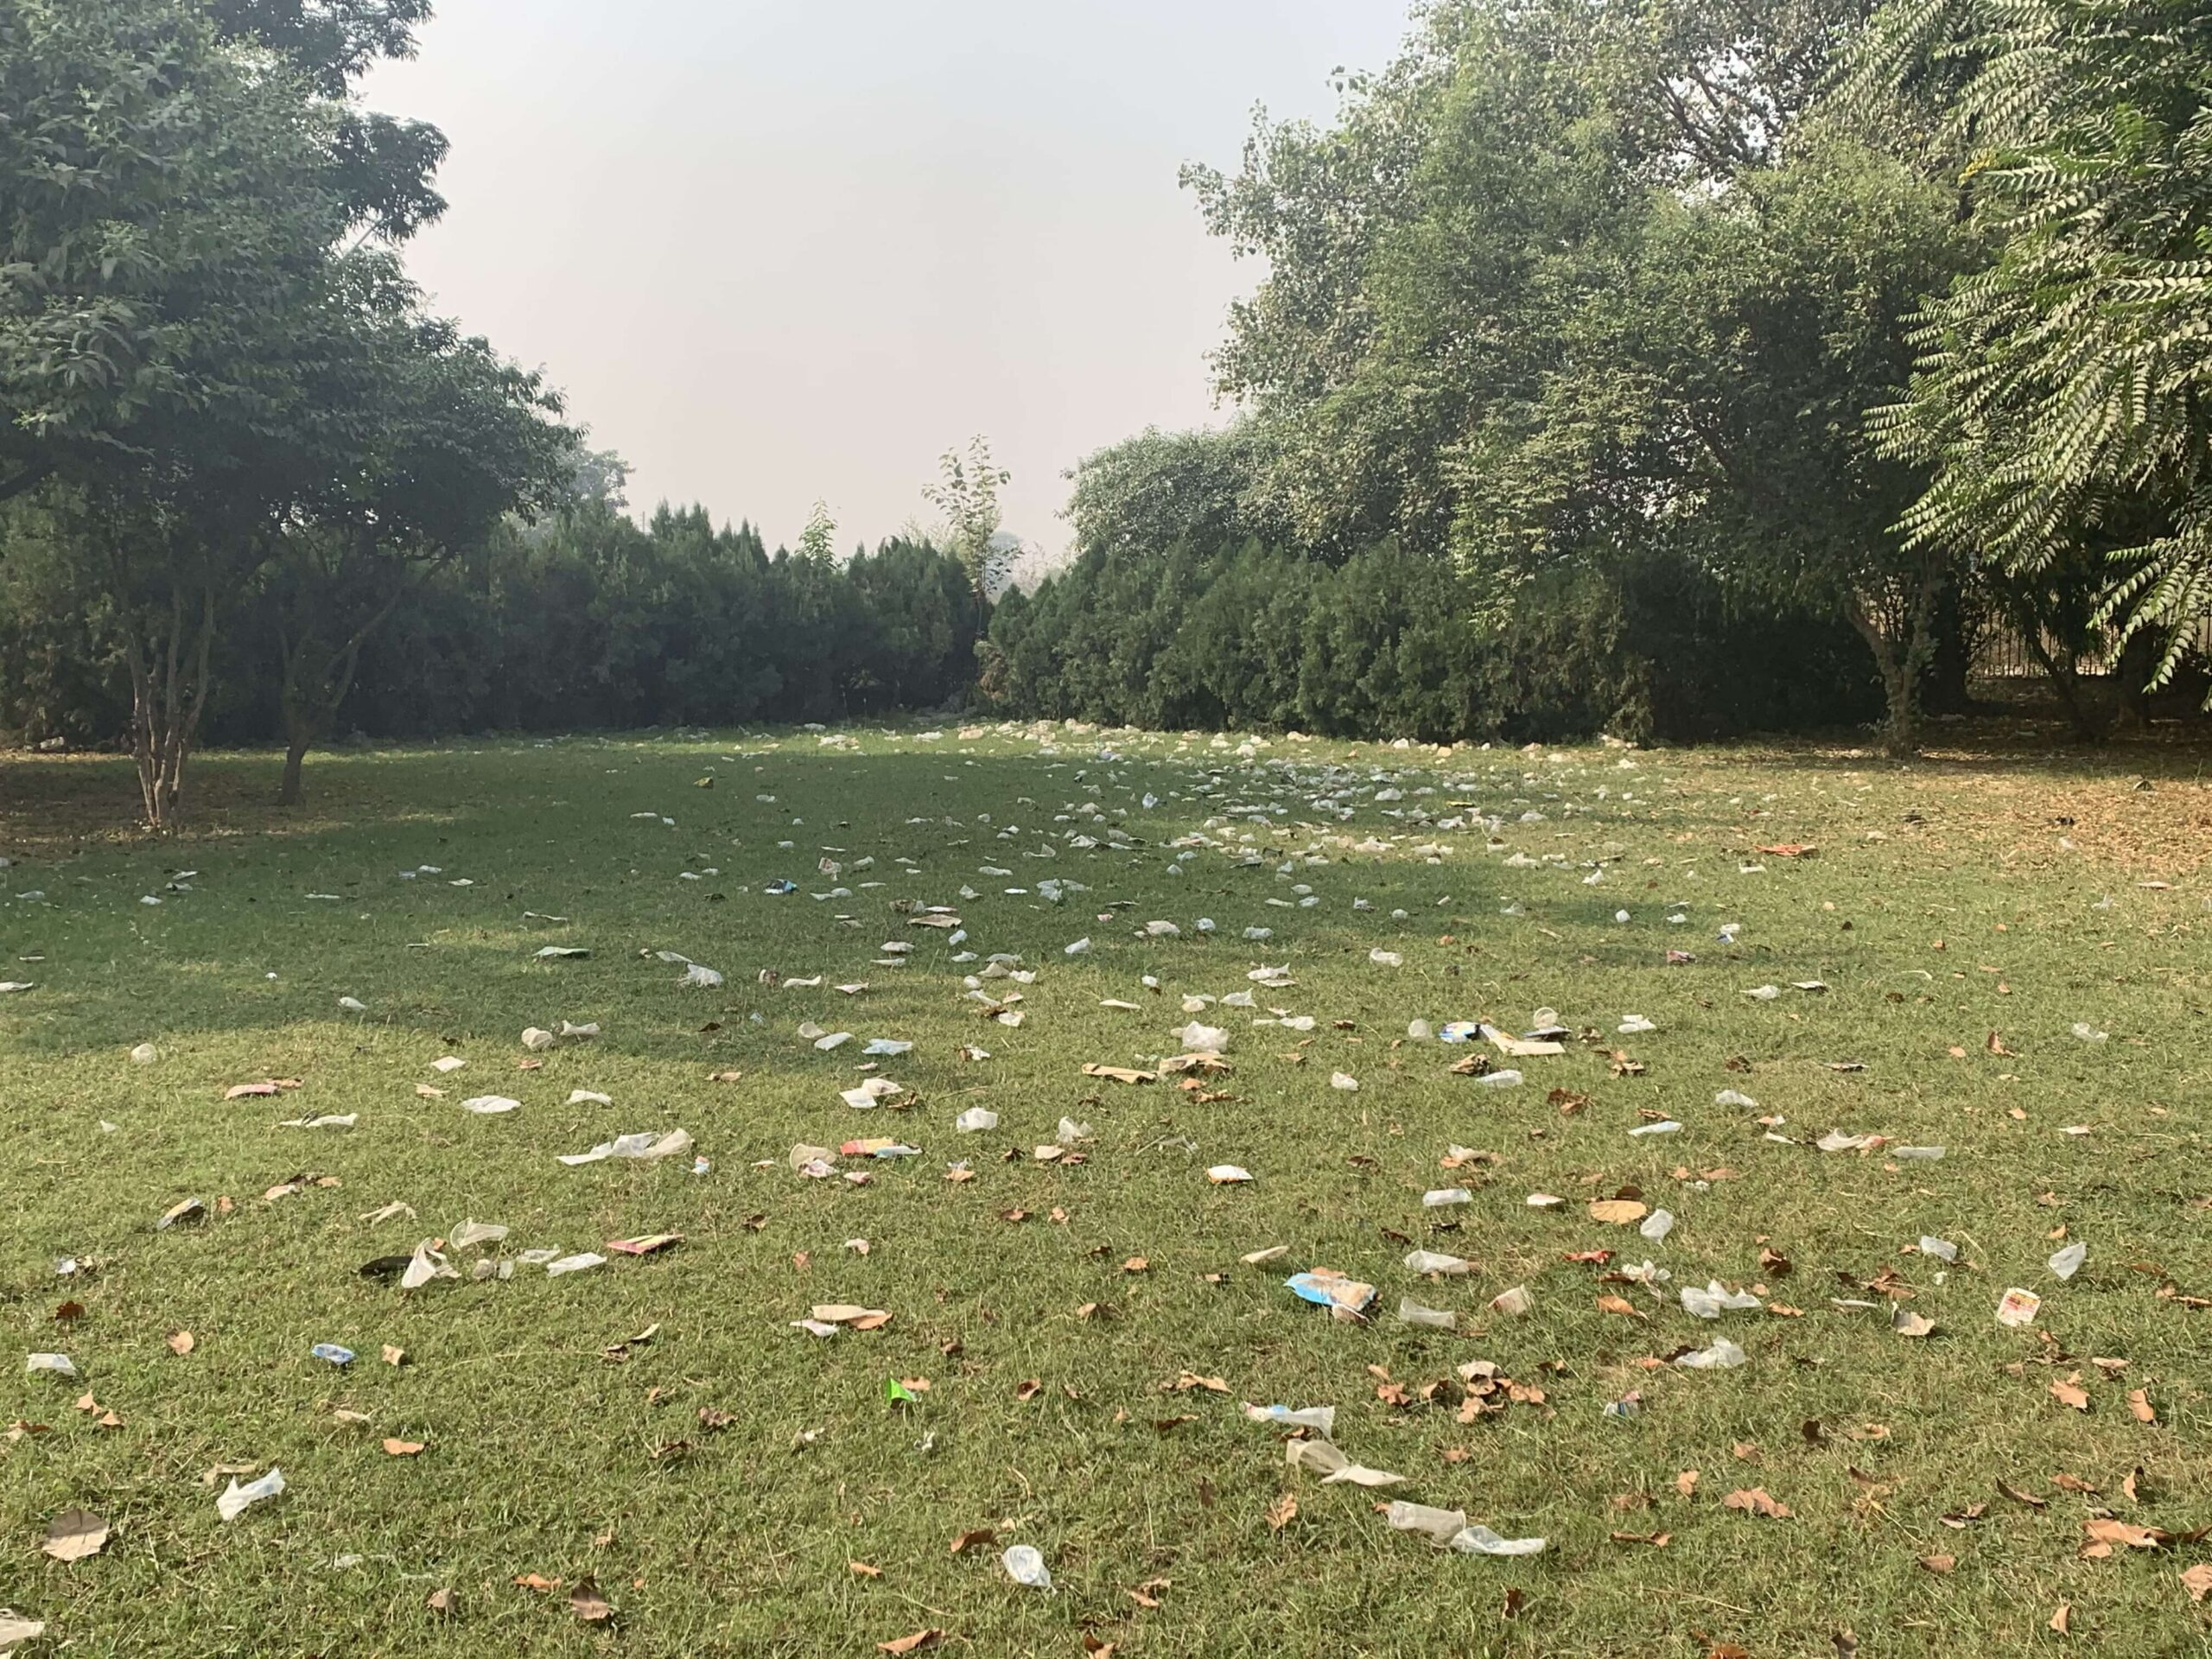 October 25 2020 - Central Park Cleanliness Drive - 1